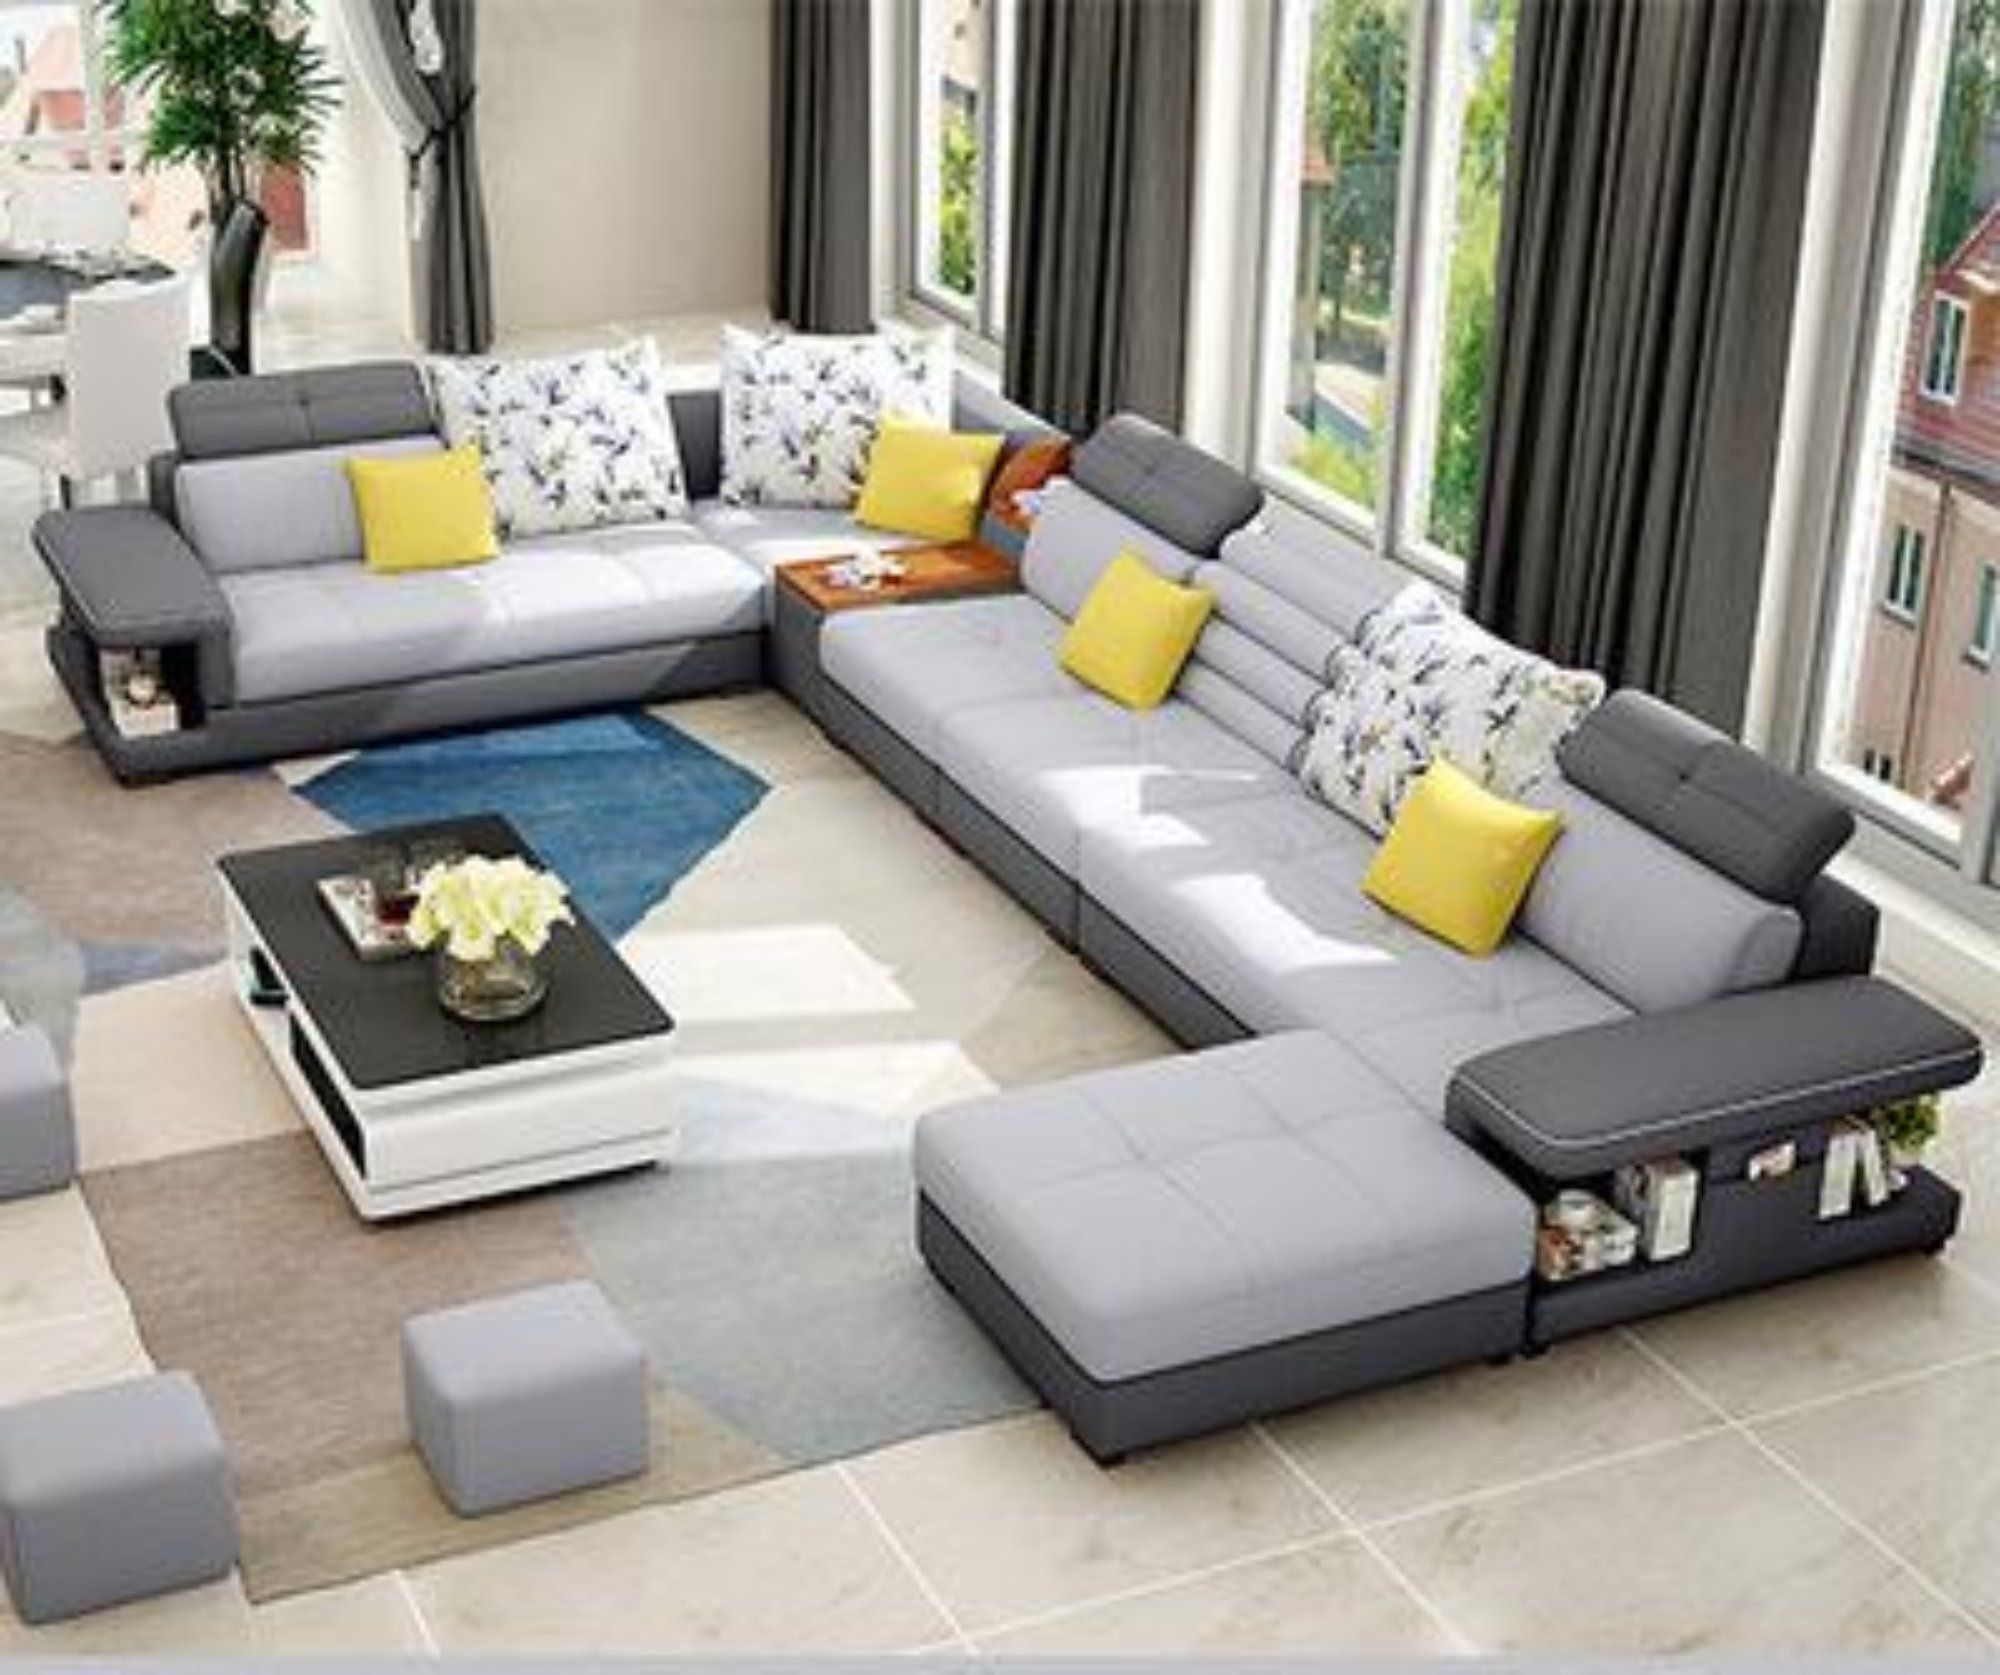 Modern Luxury U Type Fabric Sofa Living Room Sofa Design Luxury Sofa Design Sofa Set Designs